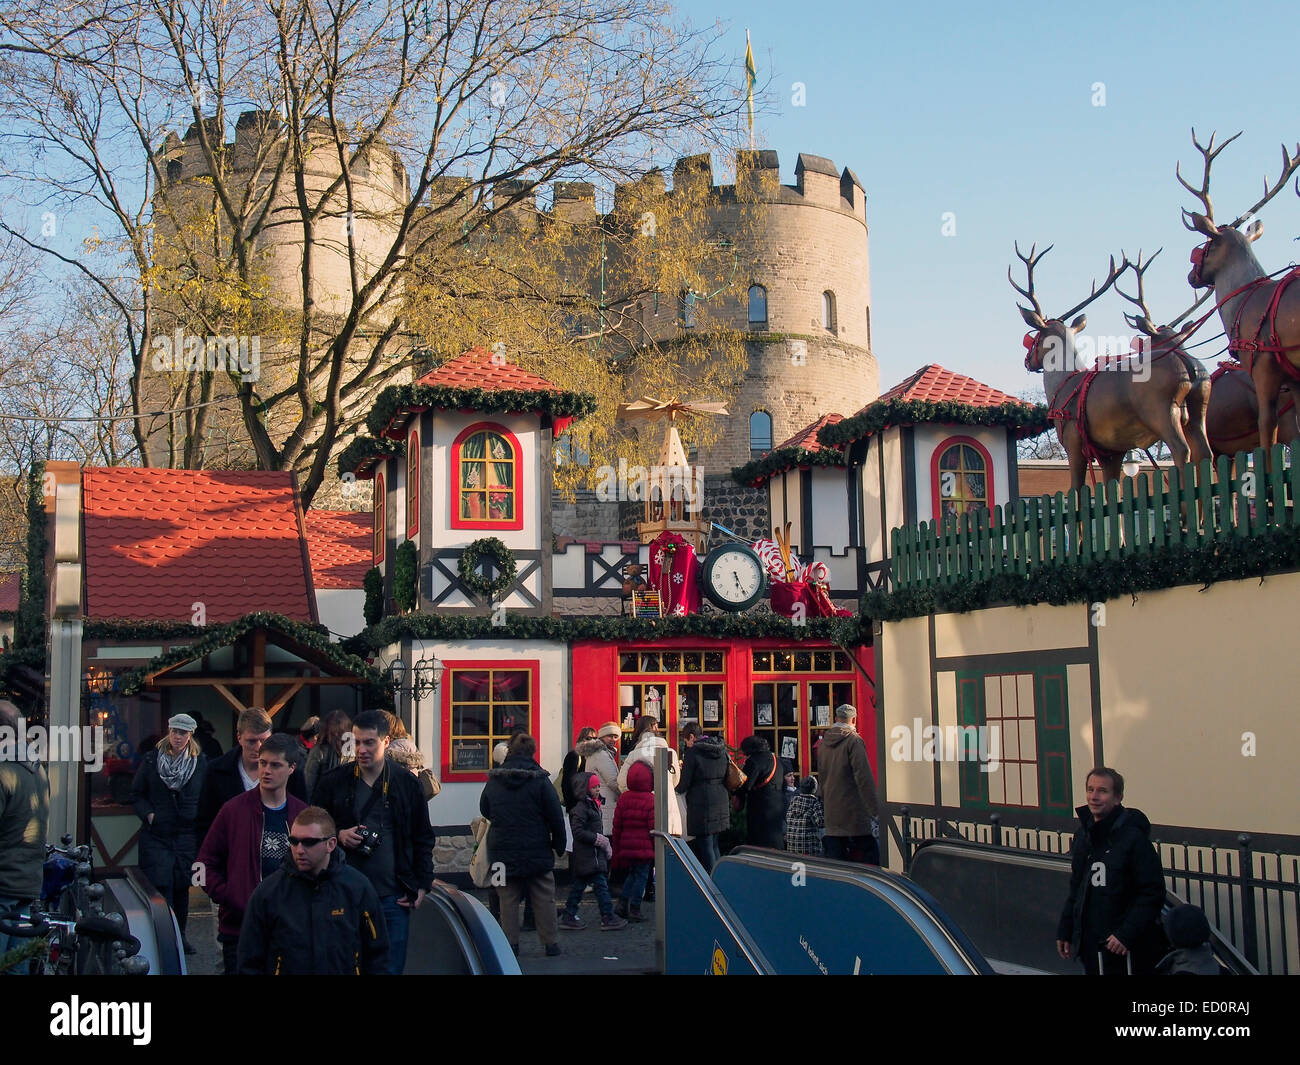 Colouful  shops and stalls in the Christmas market  (Weihnachtsmarkt) in the Rudolfplatz in Cologne, Germany, December - Stock Image